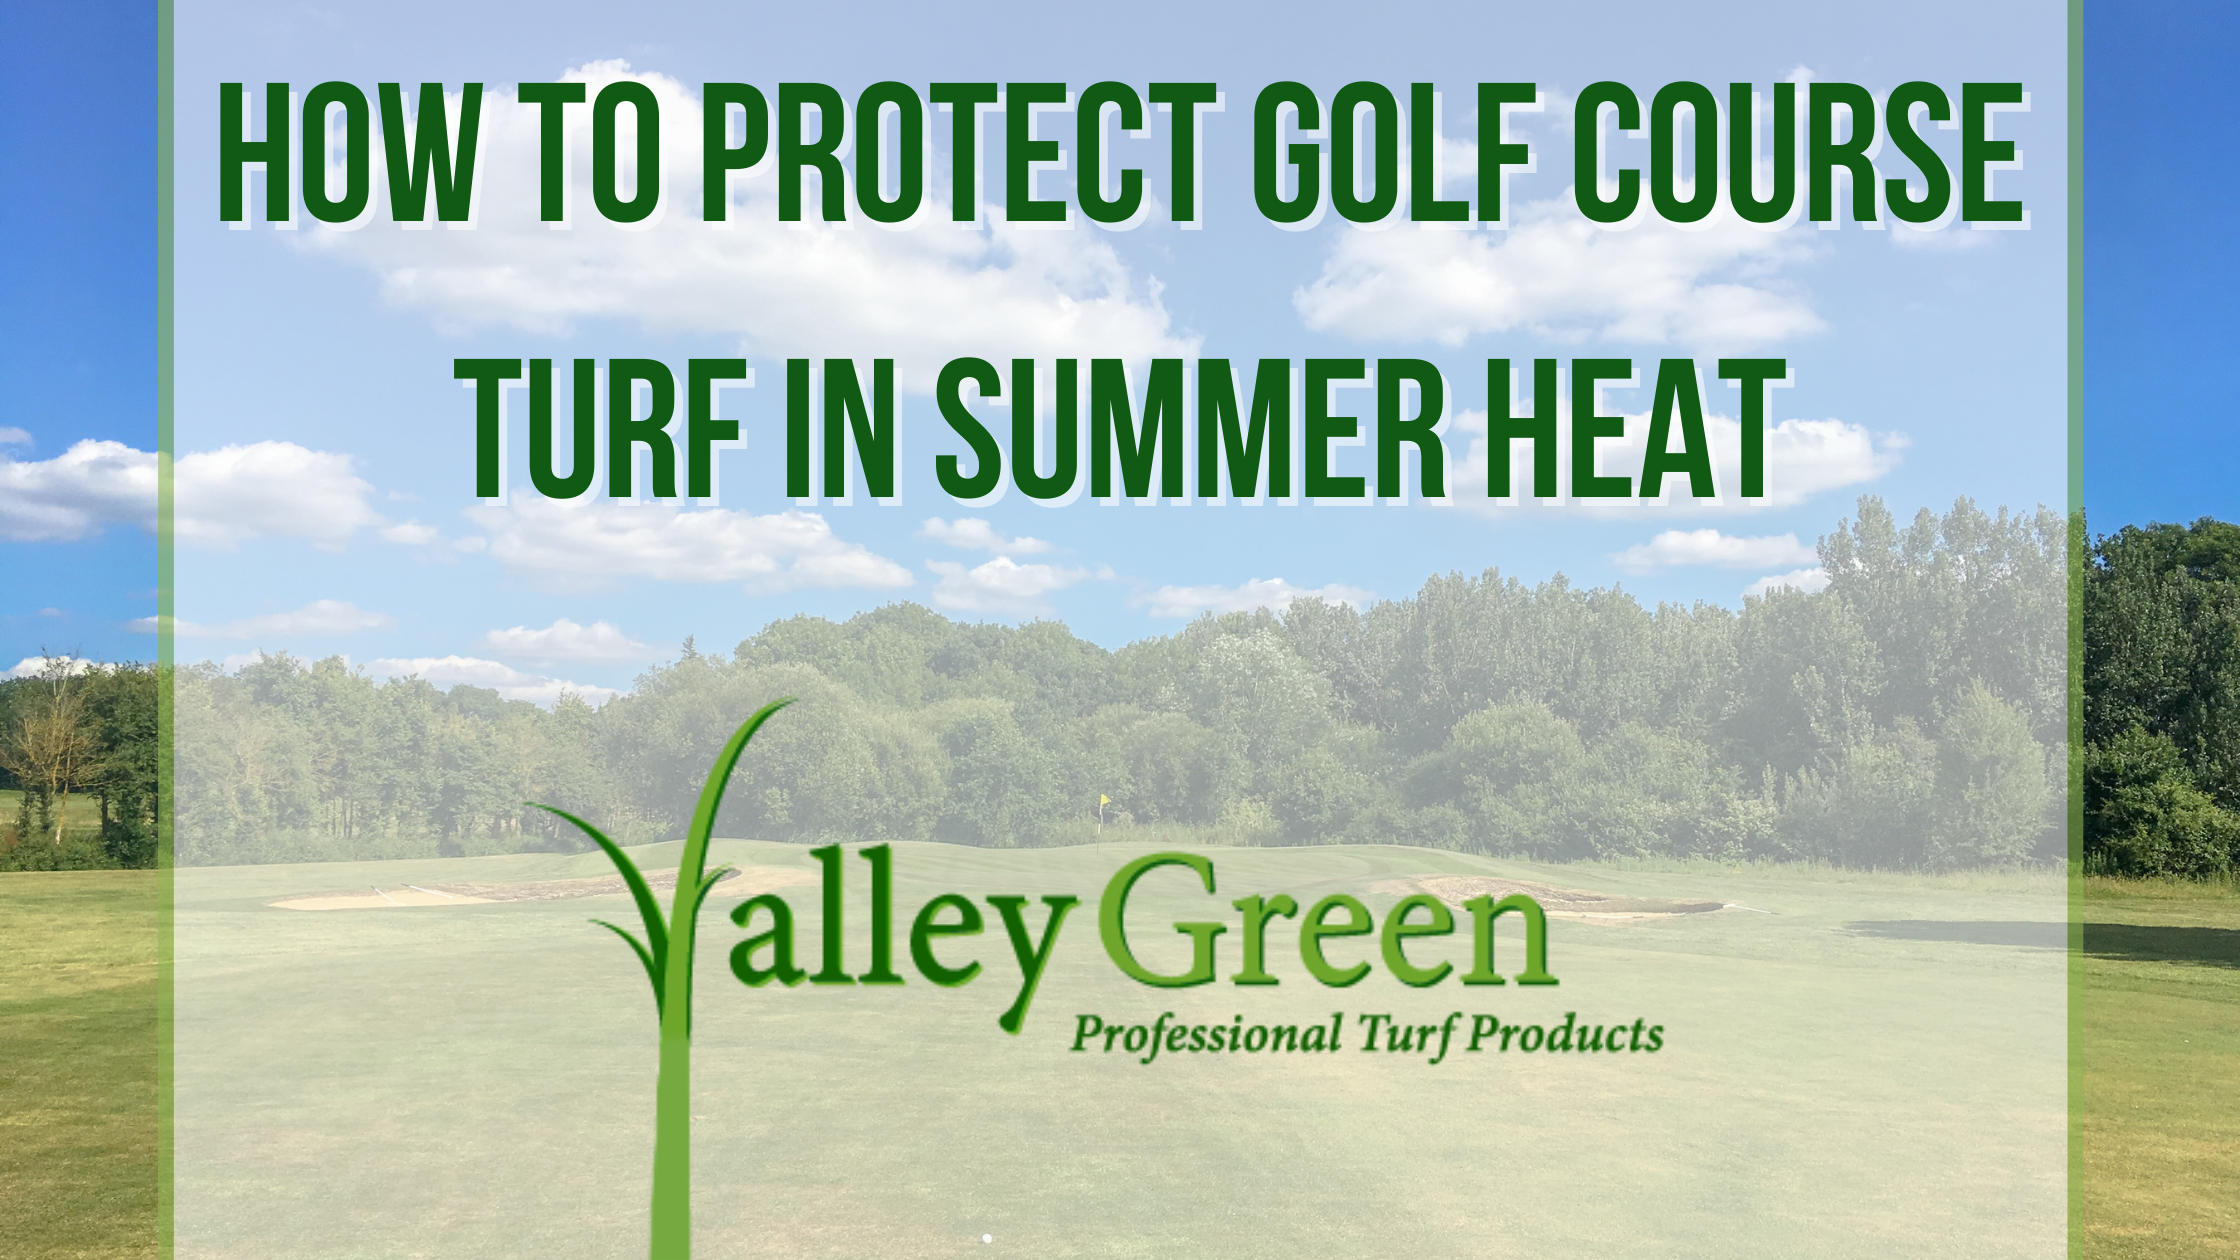 How to Protect Golf Course Turf in Summer Heat